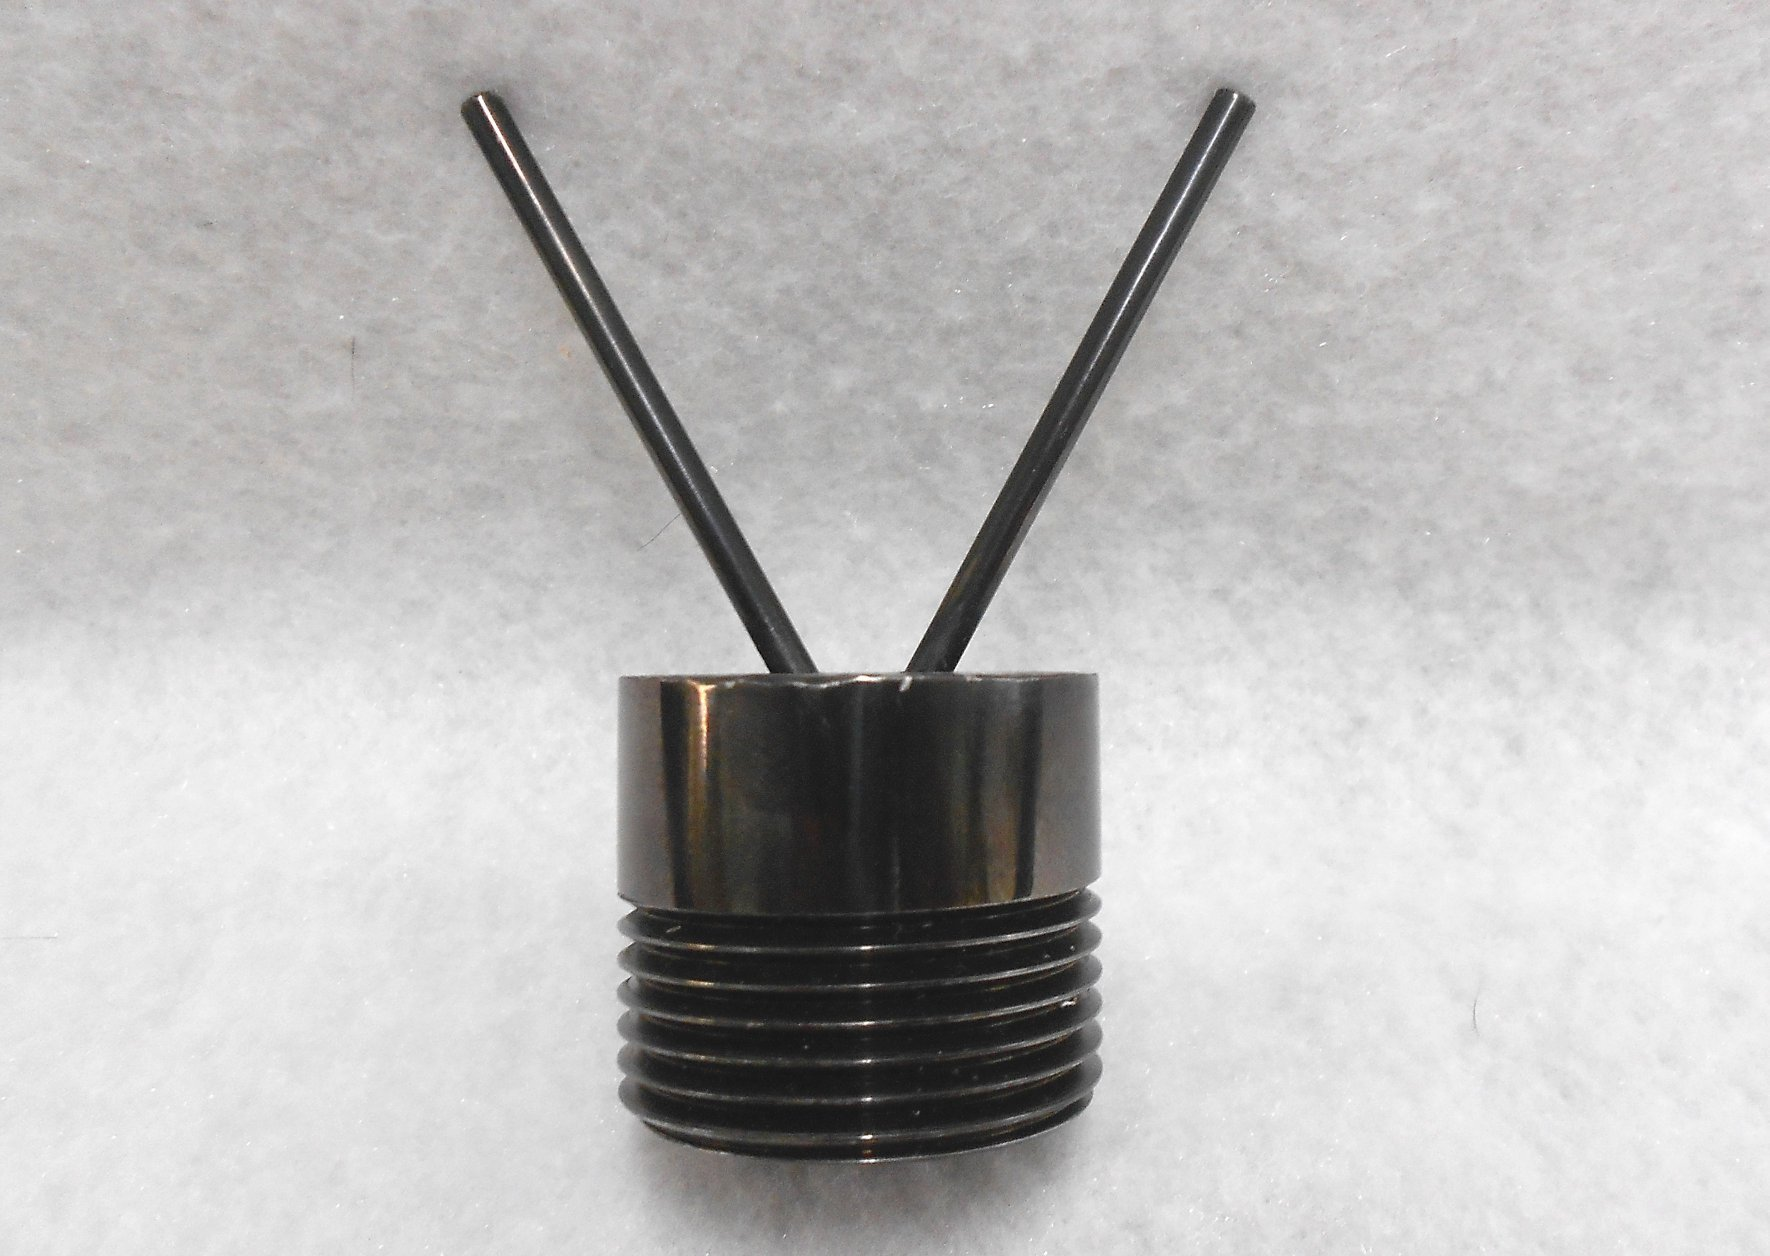 A-2271 3cc adapter